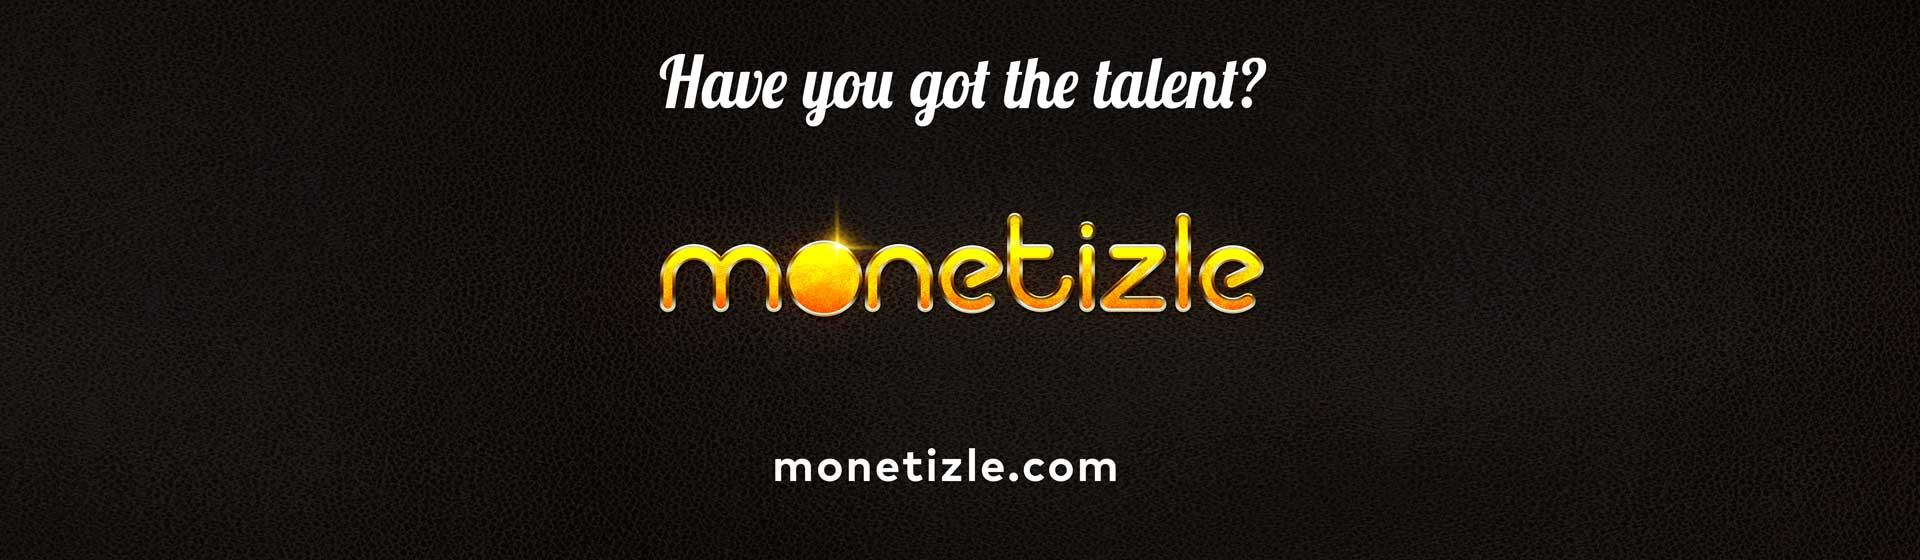 Monetizle - make mony with your talent